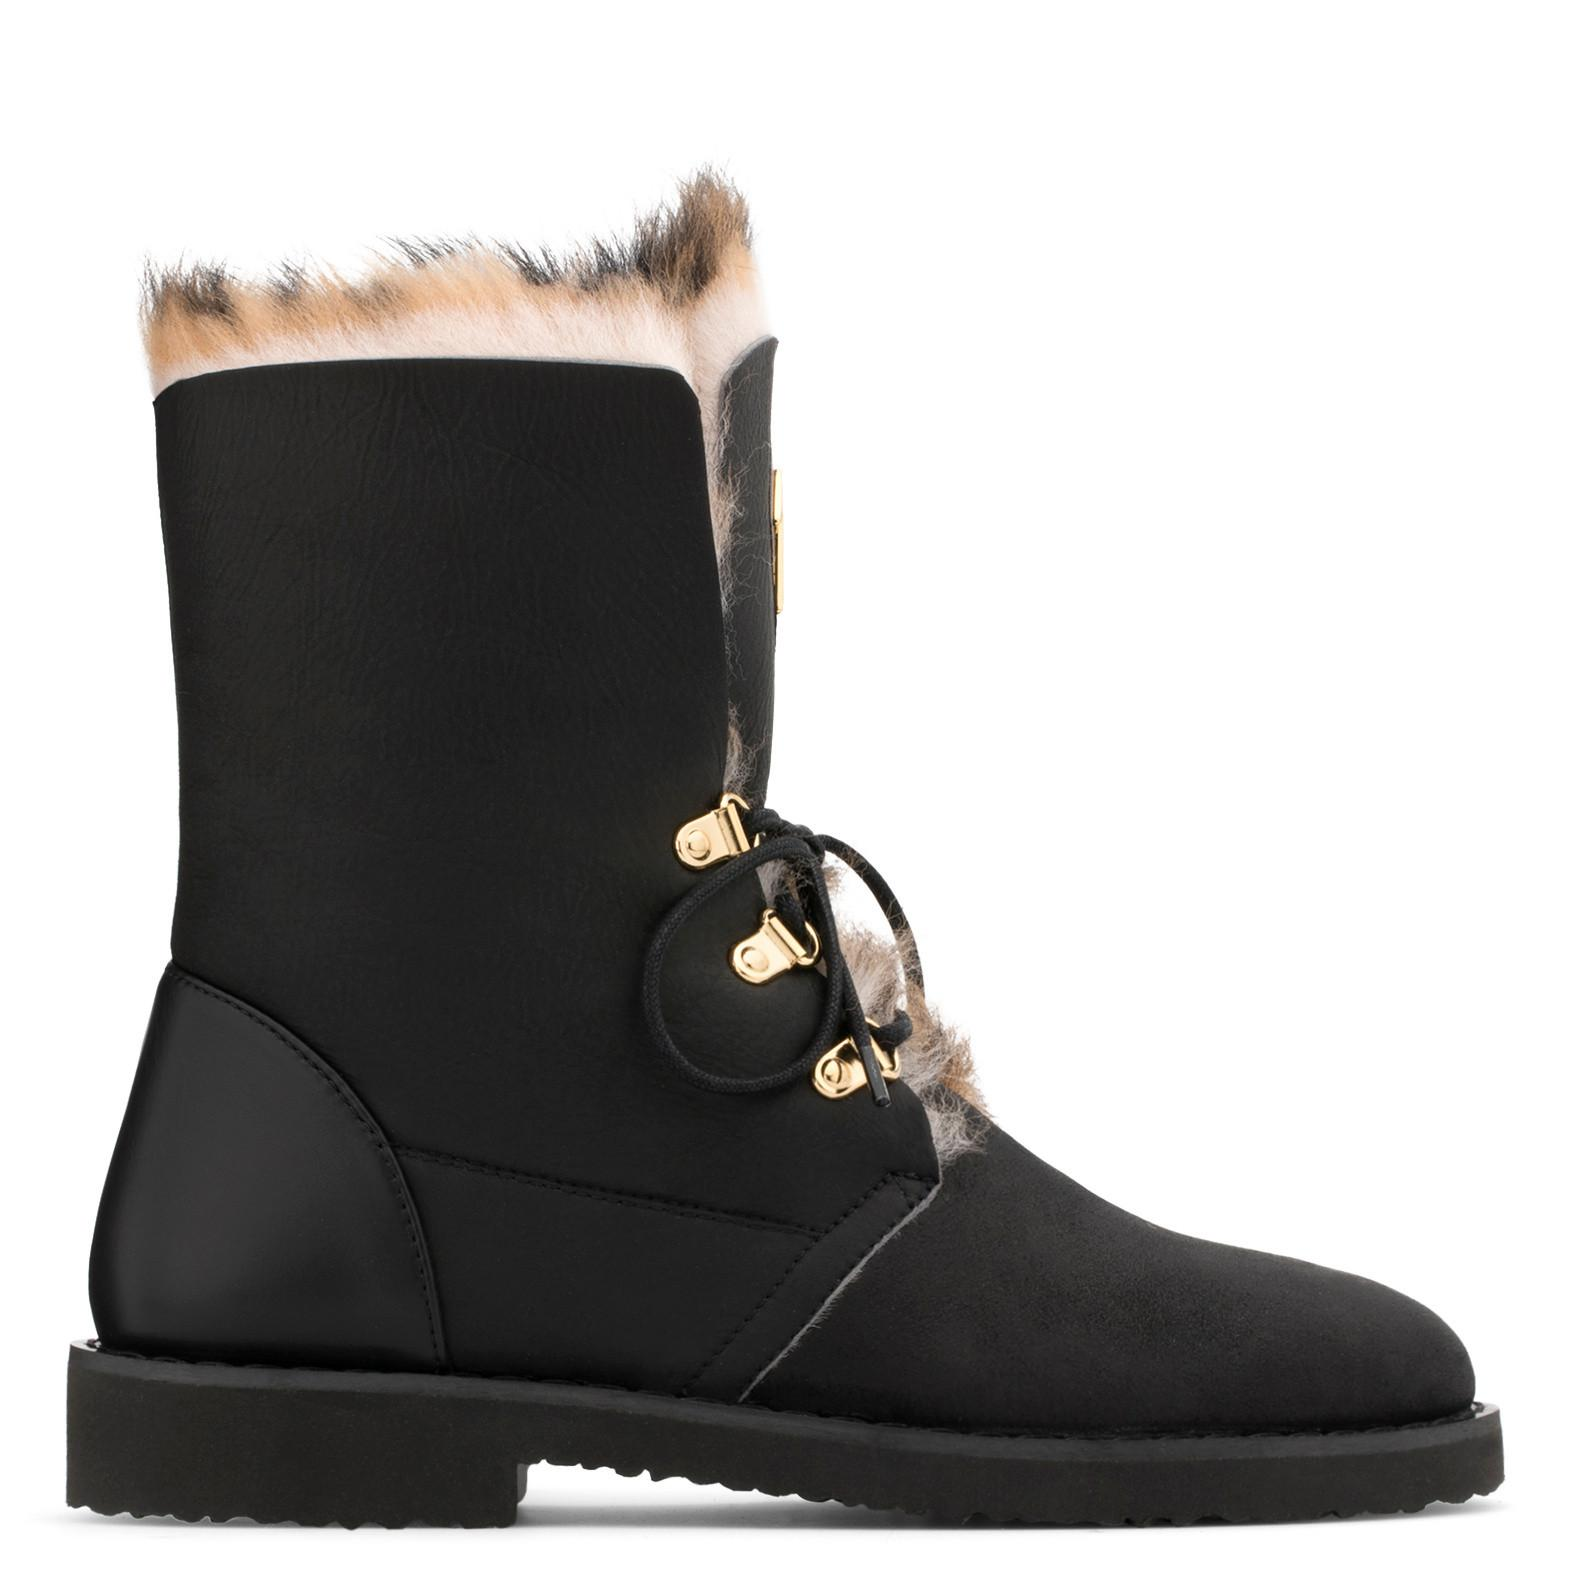 Giuseppe Zanotti Black calfskin leather boot with shearling fur inside PHILLIS